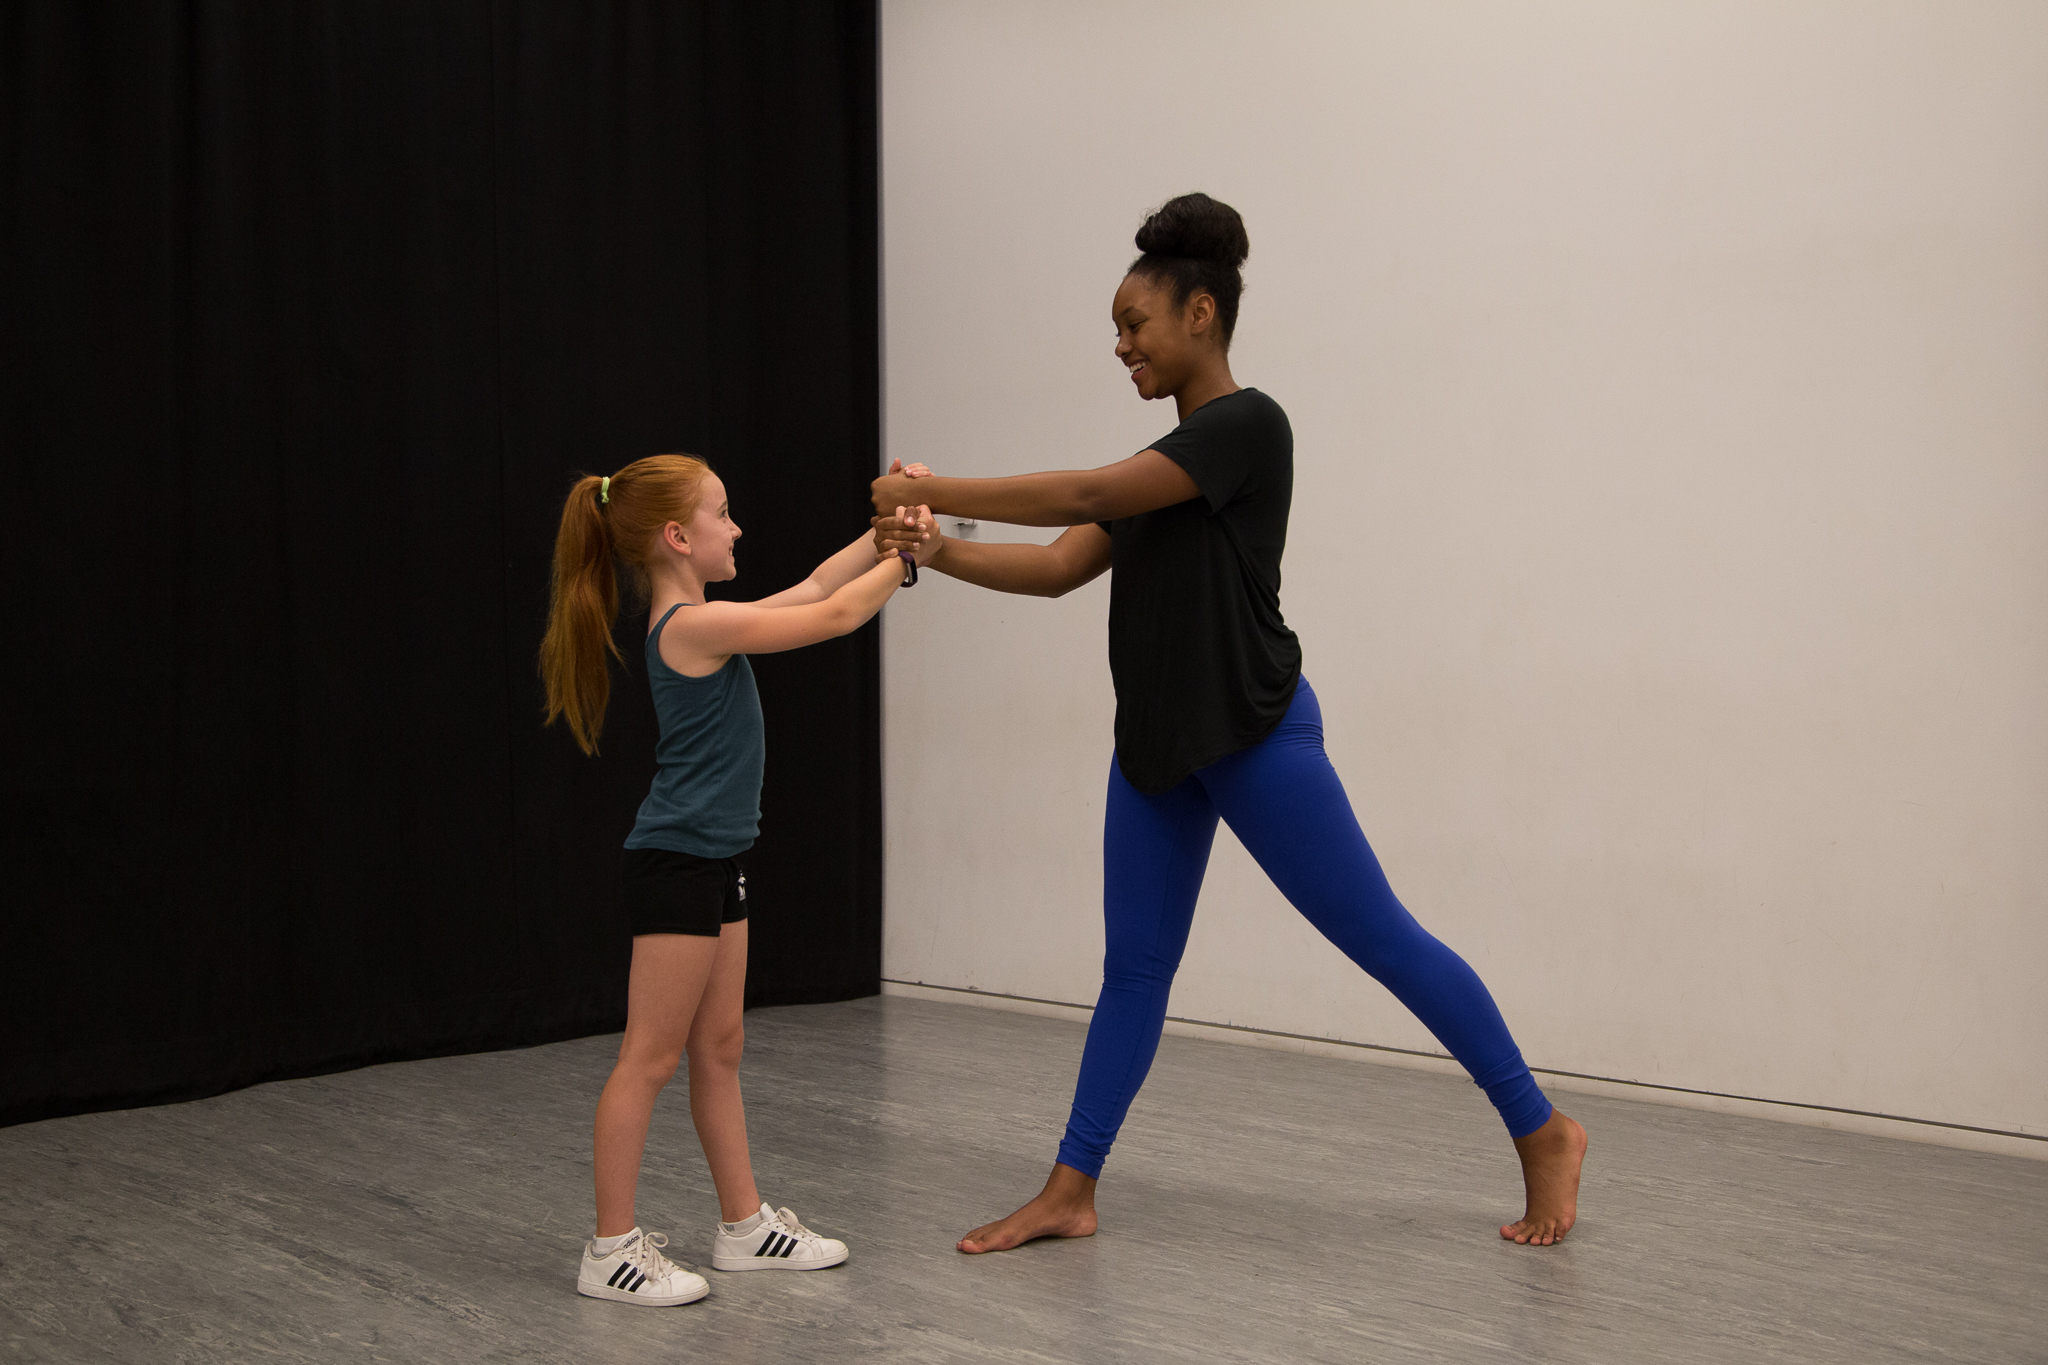 Class Assistants & BUddies Needed - Learn how you can be a leader and mentor at the studio